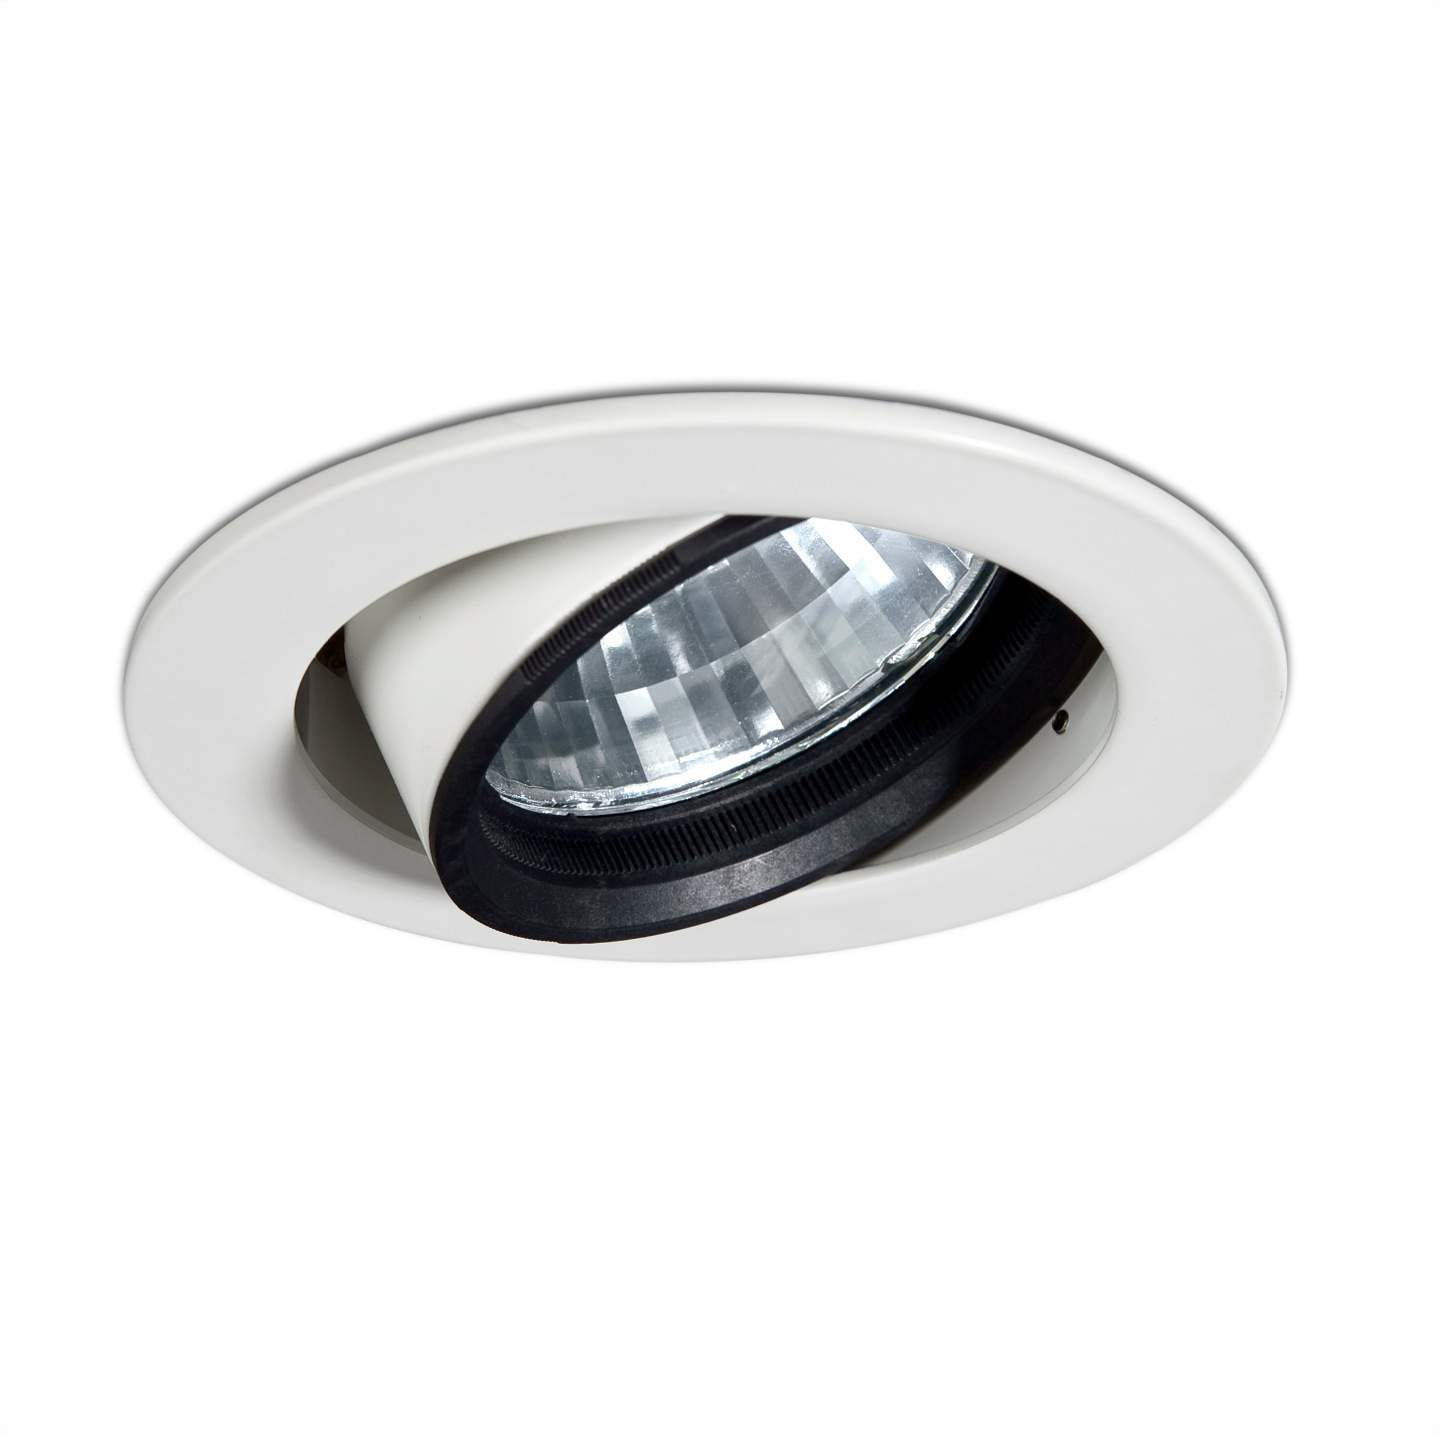 Olimpo Downlight Orientable 1xC dimmable Tm 20/35w 38º blanco